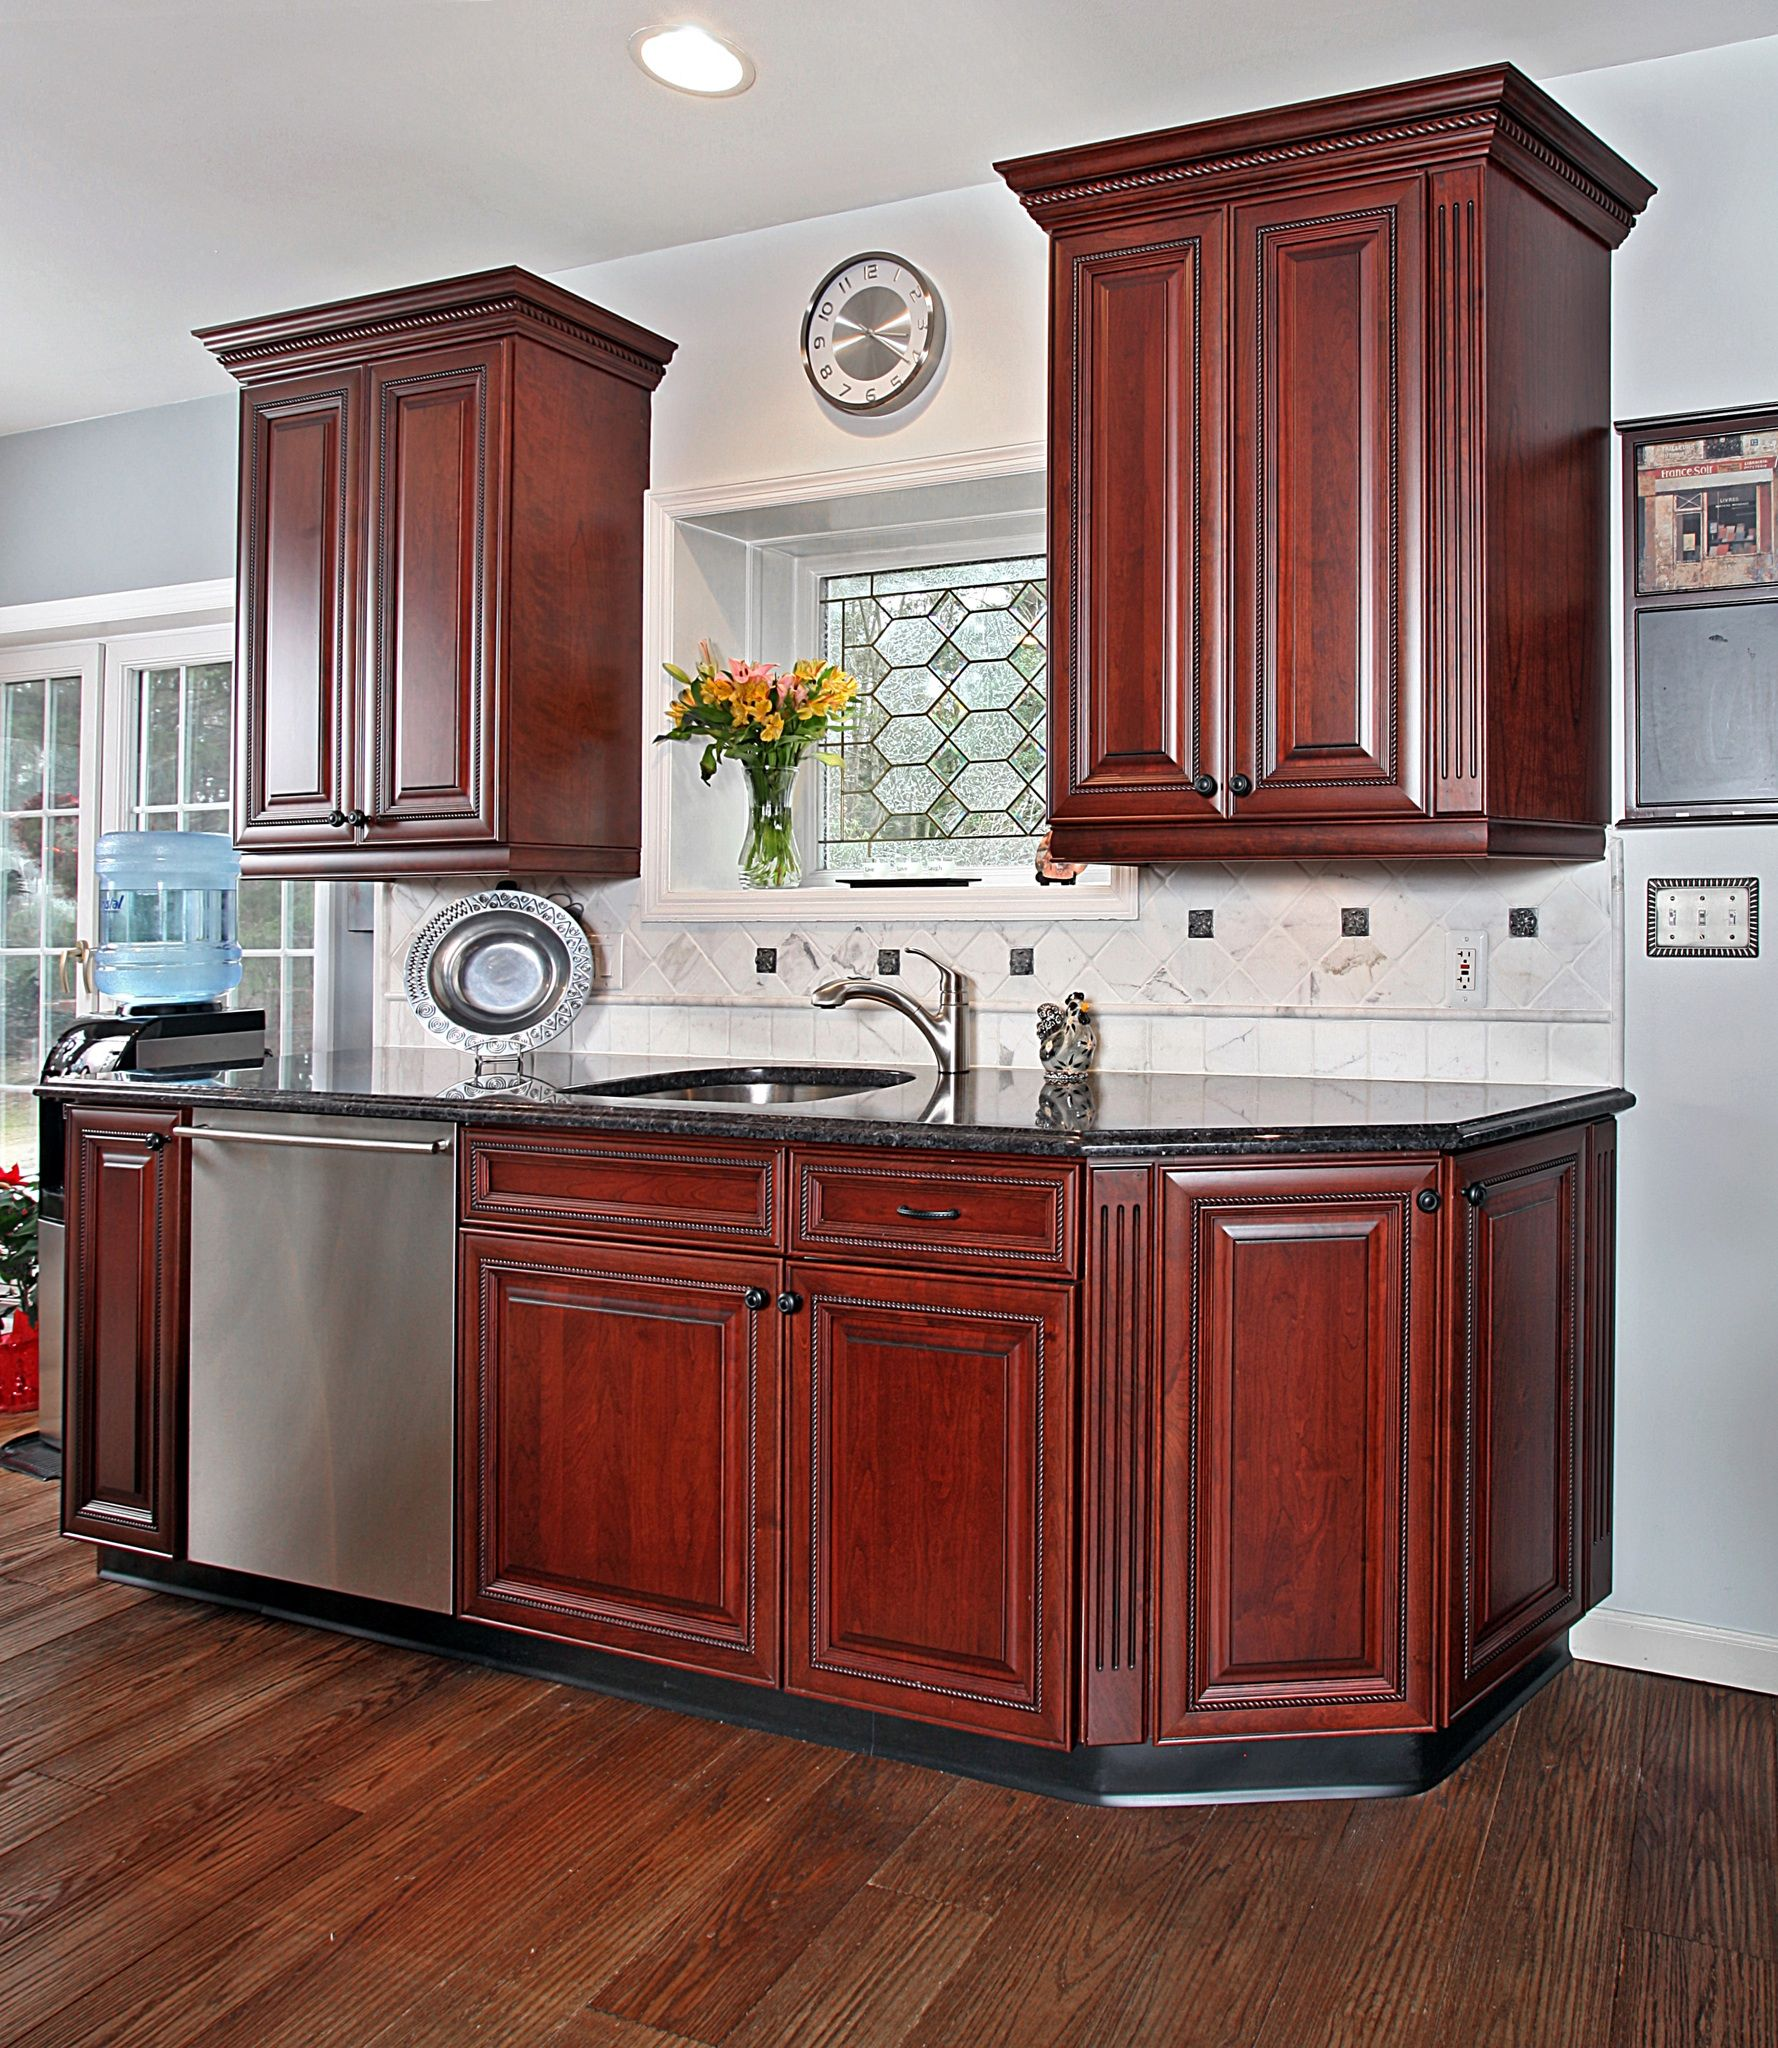 How to Pair Countertop Colors with Dark